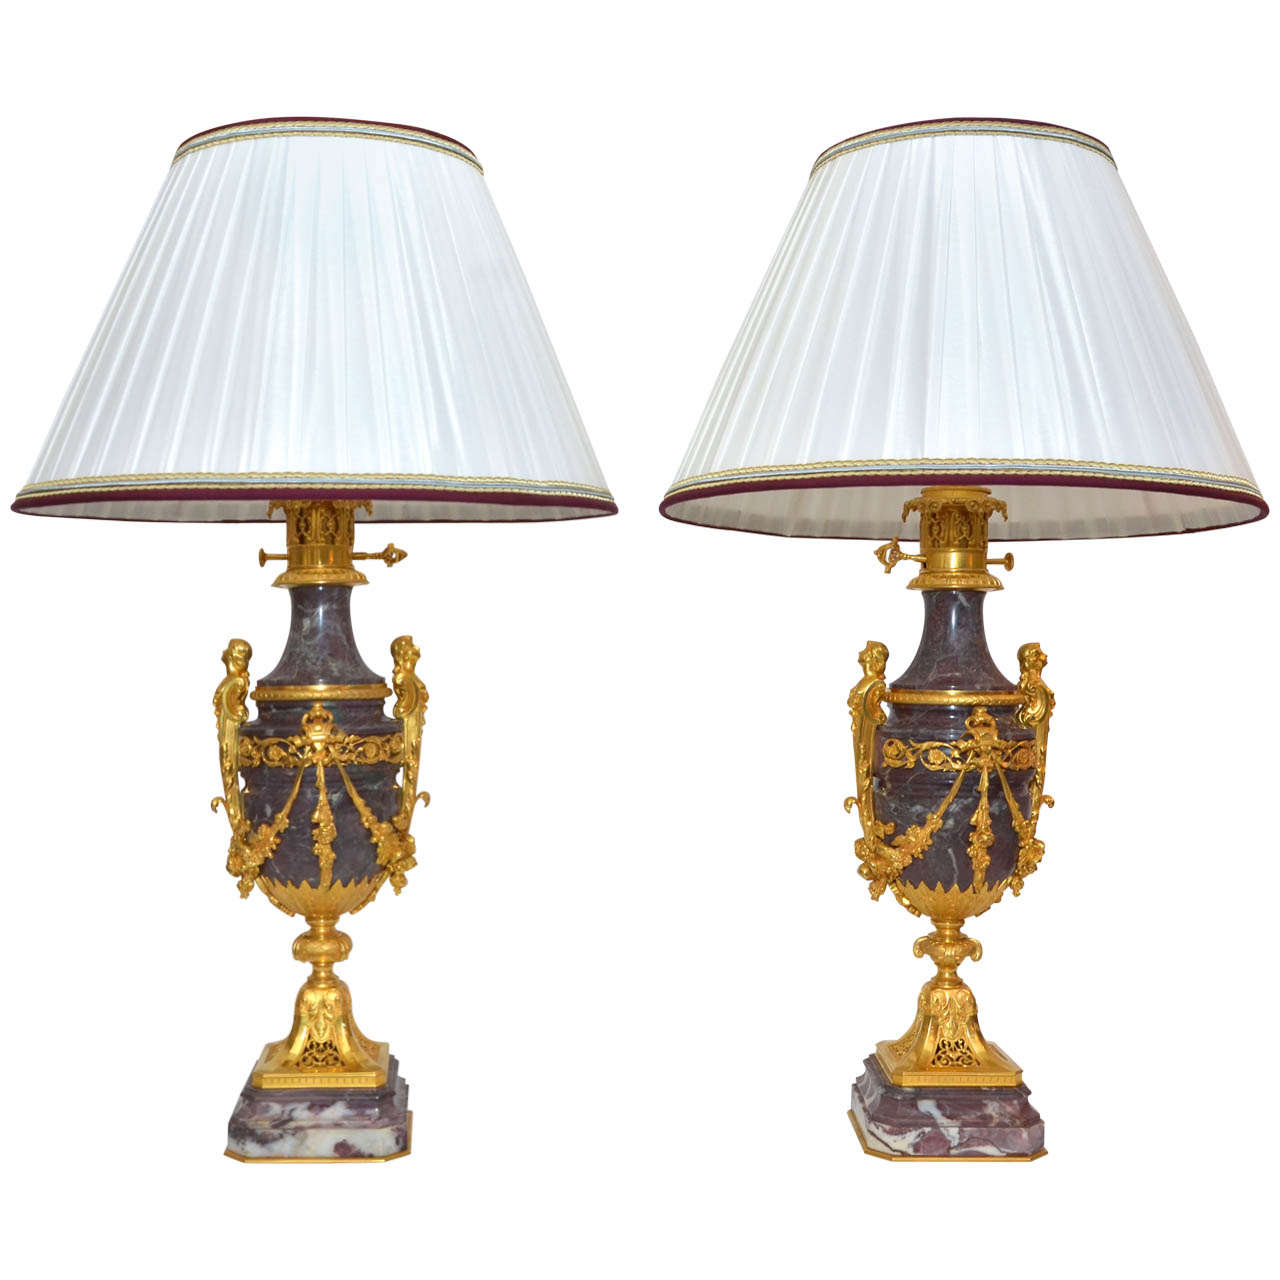 Pair Of Rare Marble Lamps With Sik Lamp Shade For Sale At